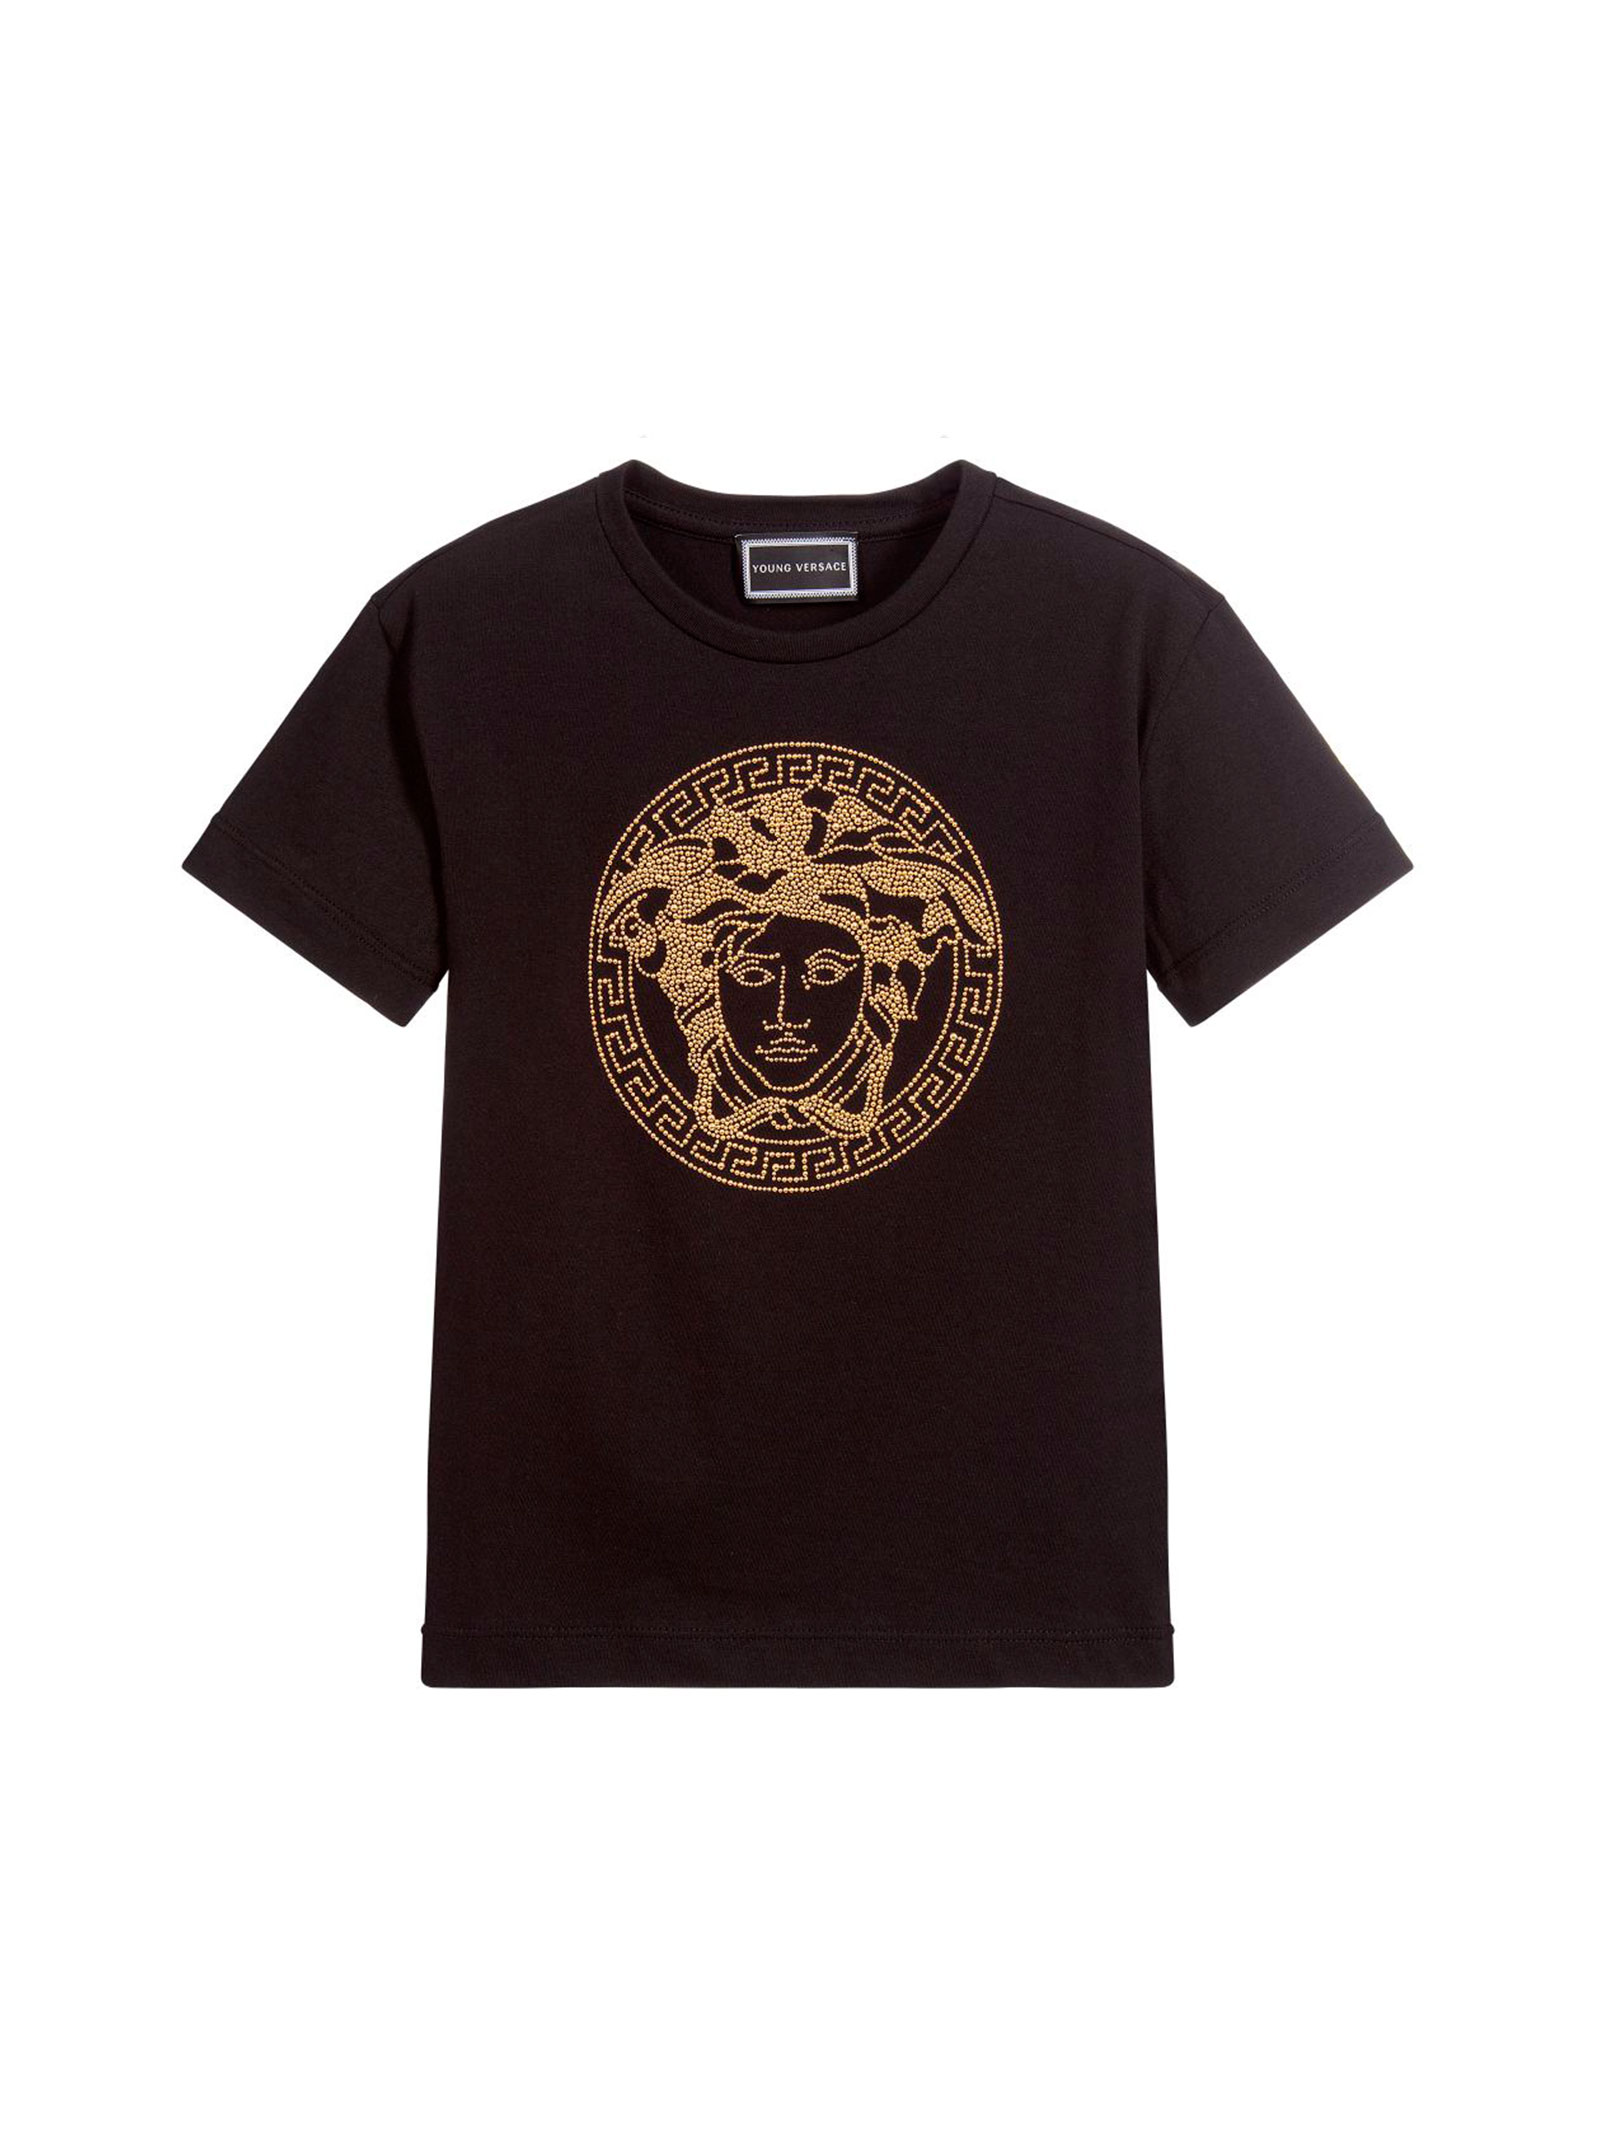 318e1946 ... BLACK YOUNG VERSACE T-SHIRT FOR BOY YOUNG VERSACE | 8 |  YVFTS281Y0002Y4916 ...